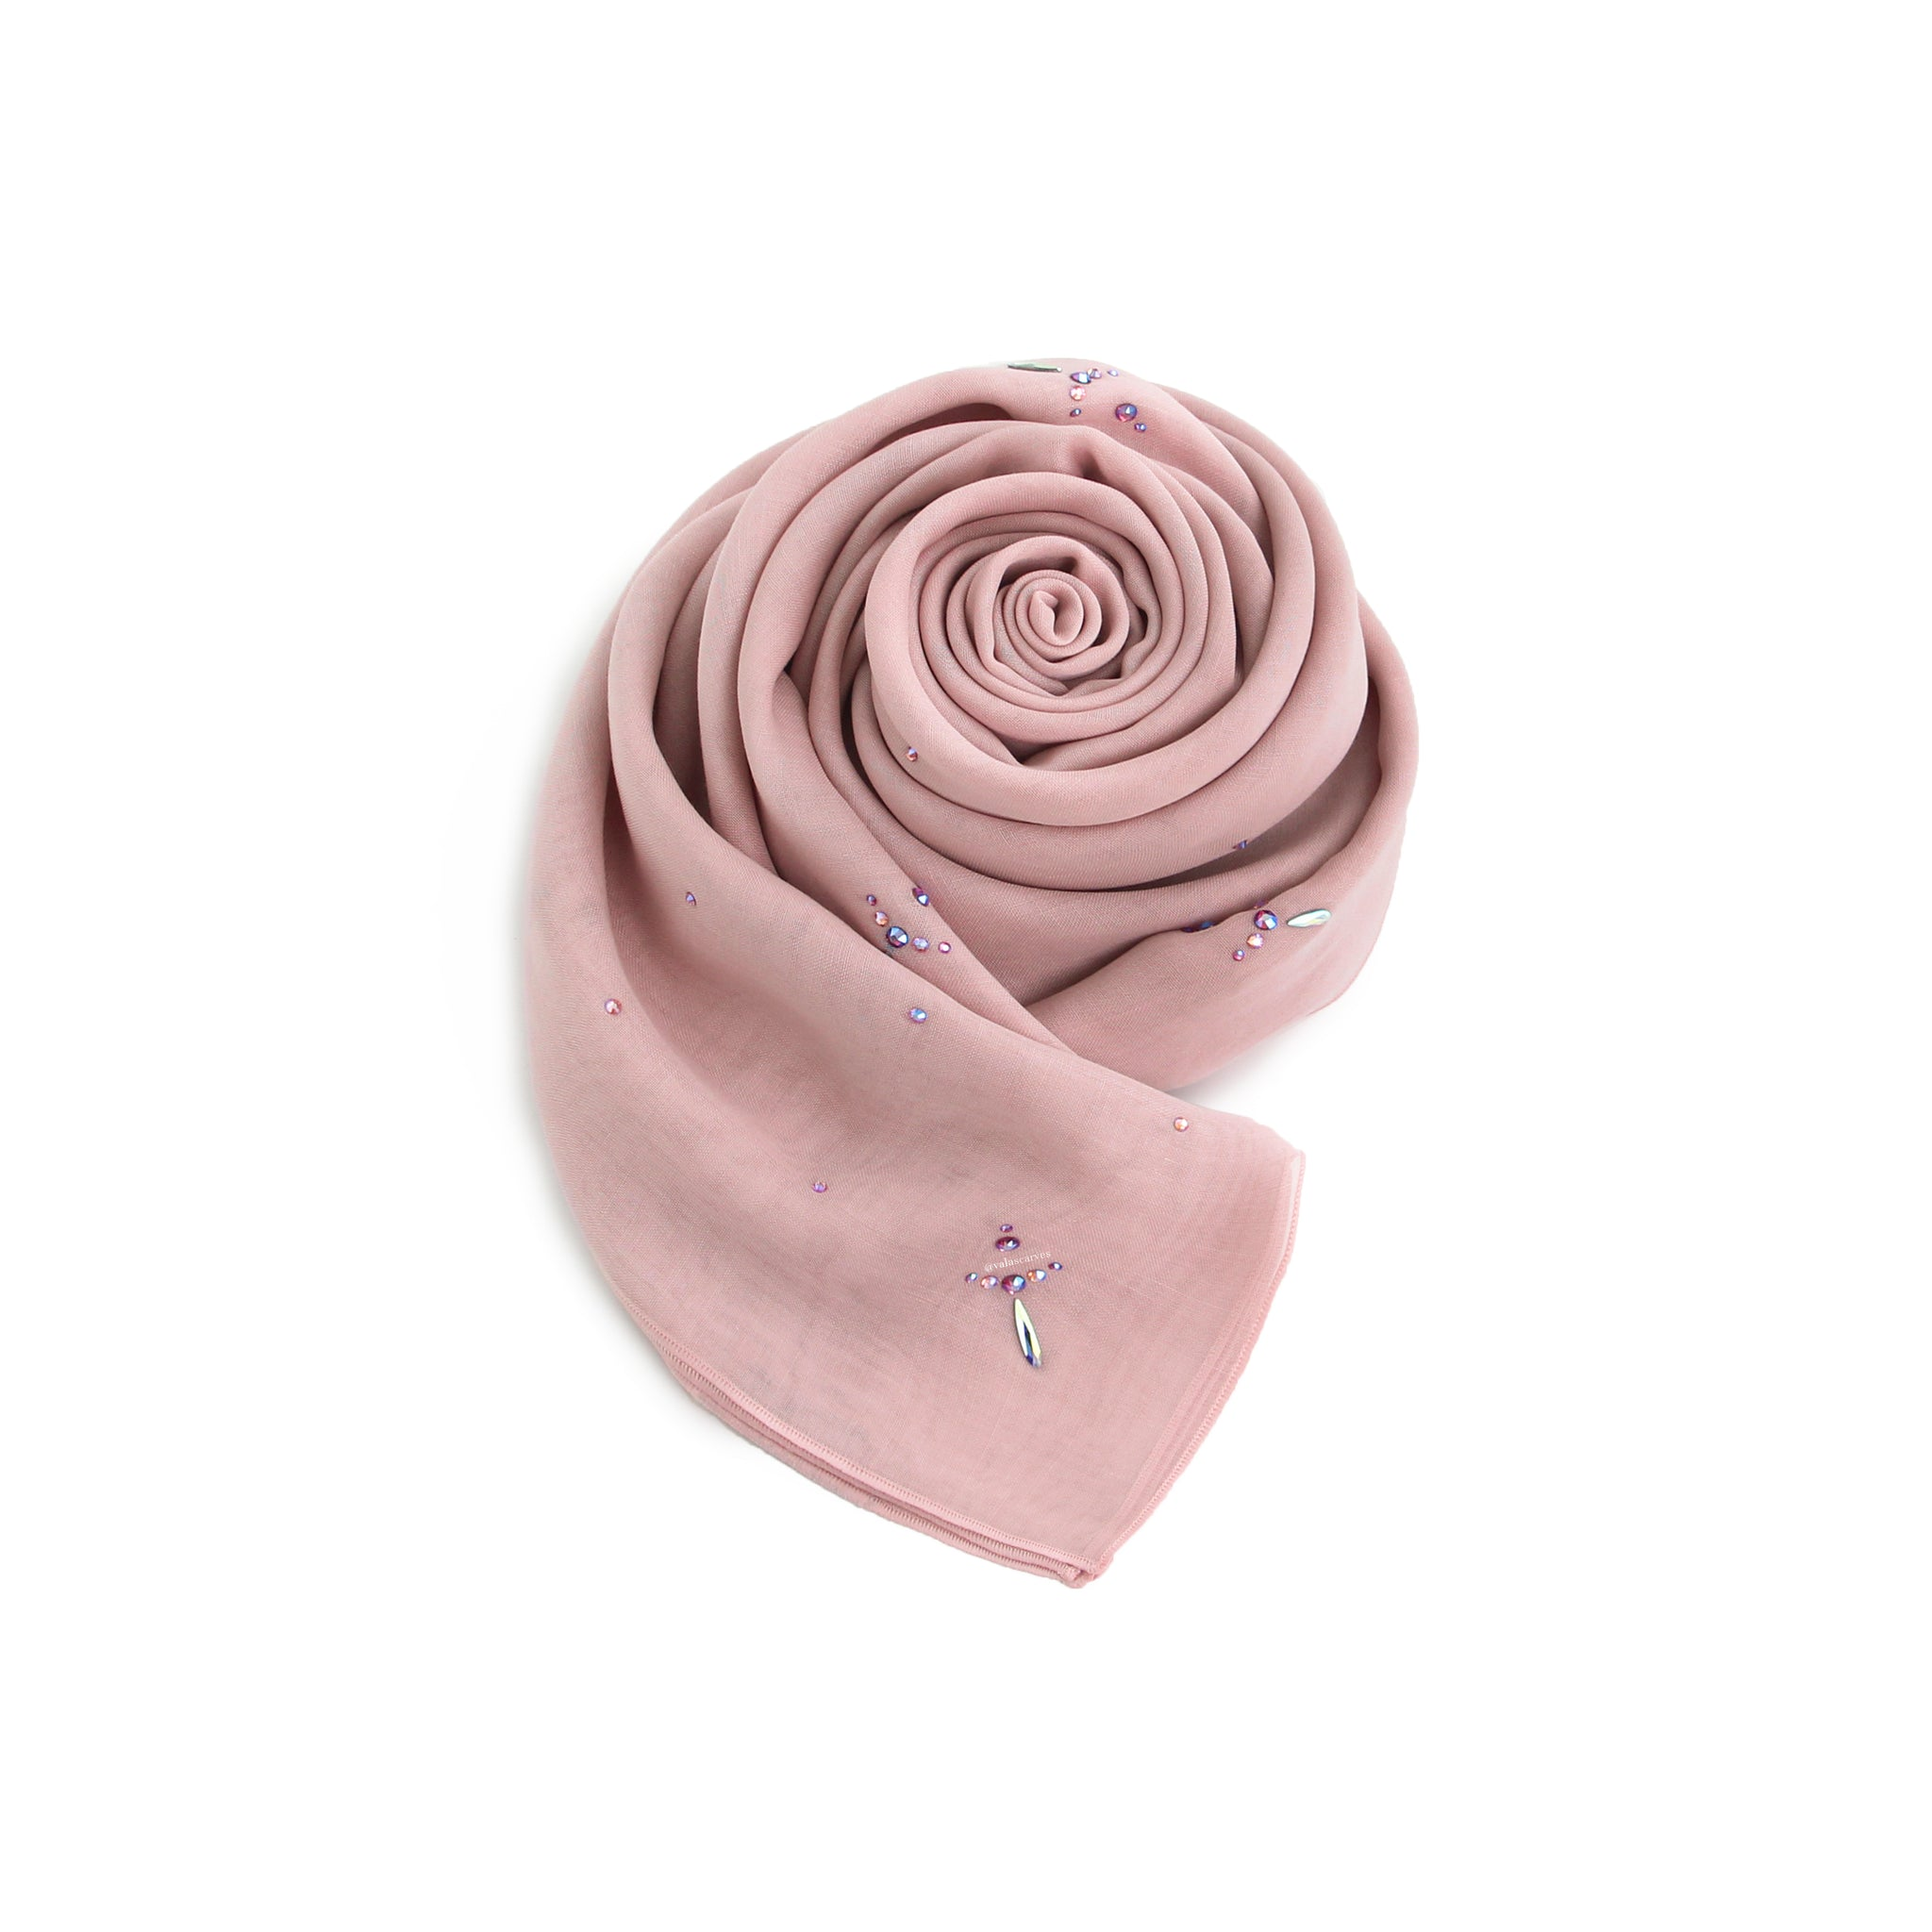 Bawal Faiza 6 (Rose Bloom)